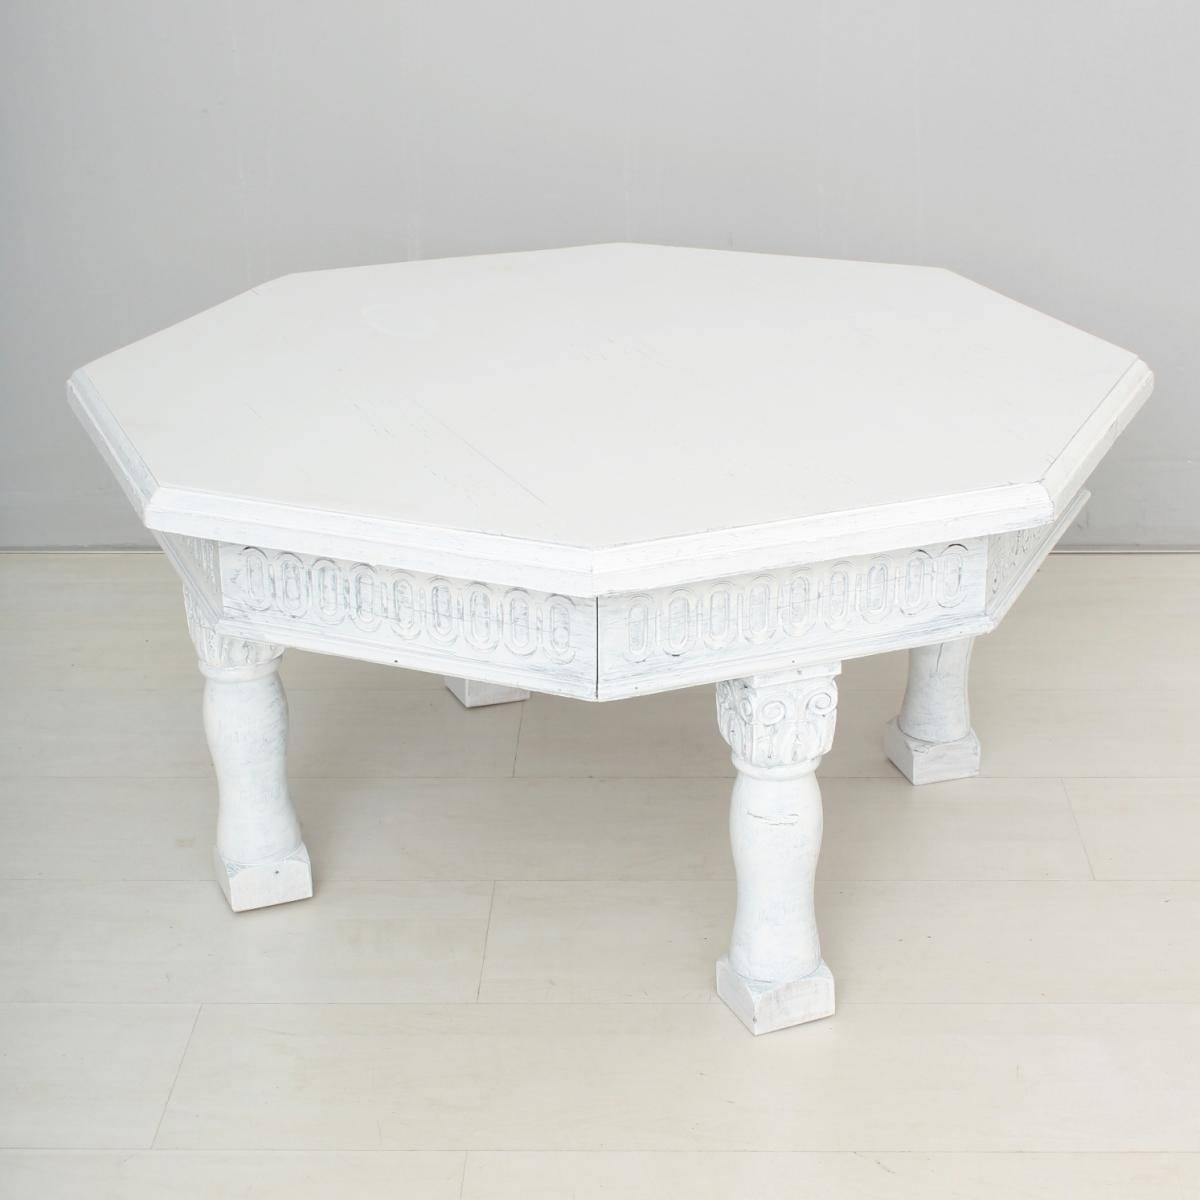 Vintage White Coffee Table For Sale At Pamono intended for Retro White Coffee Tables (Image 29 of 30)